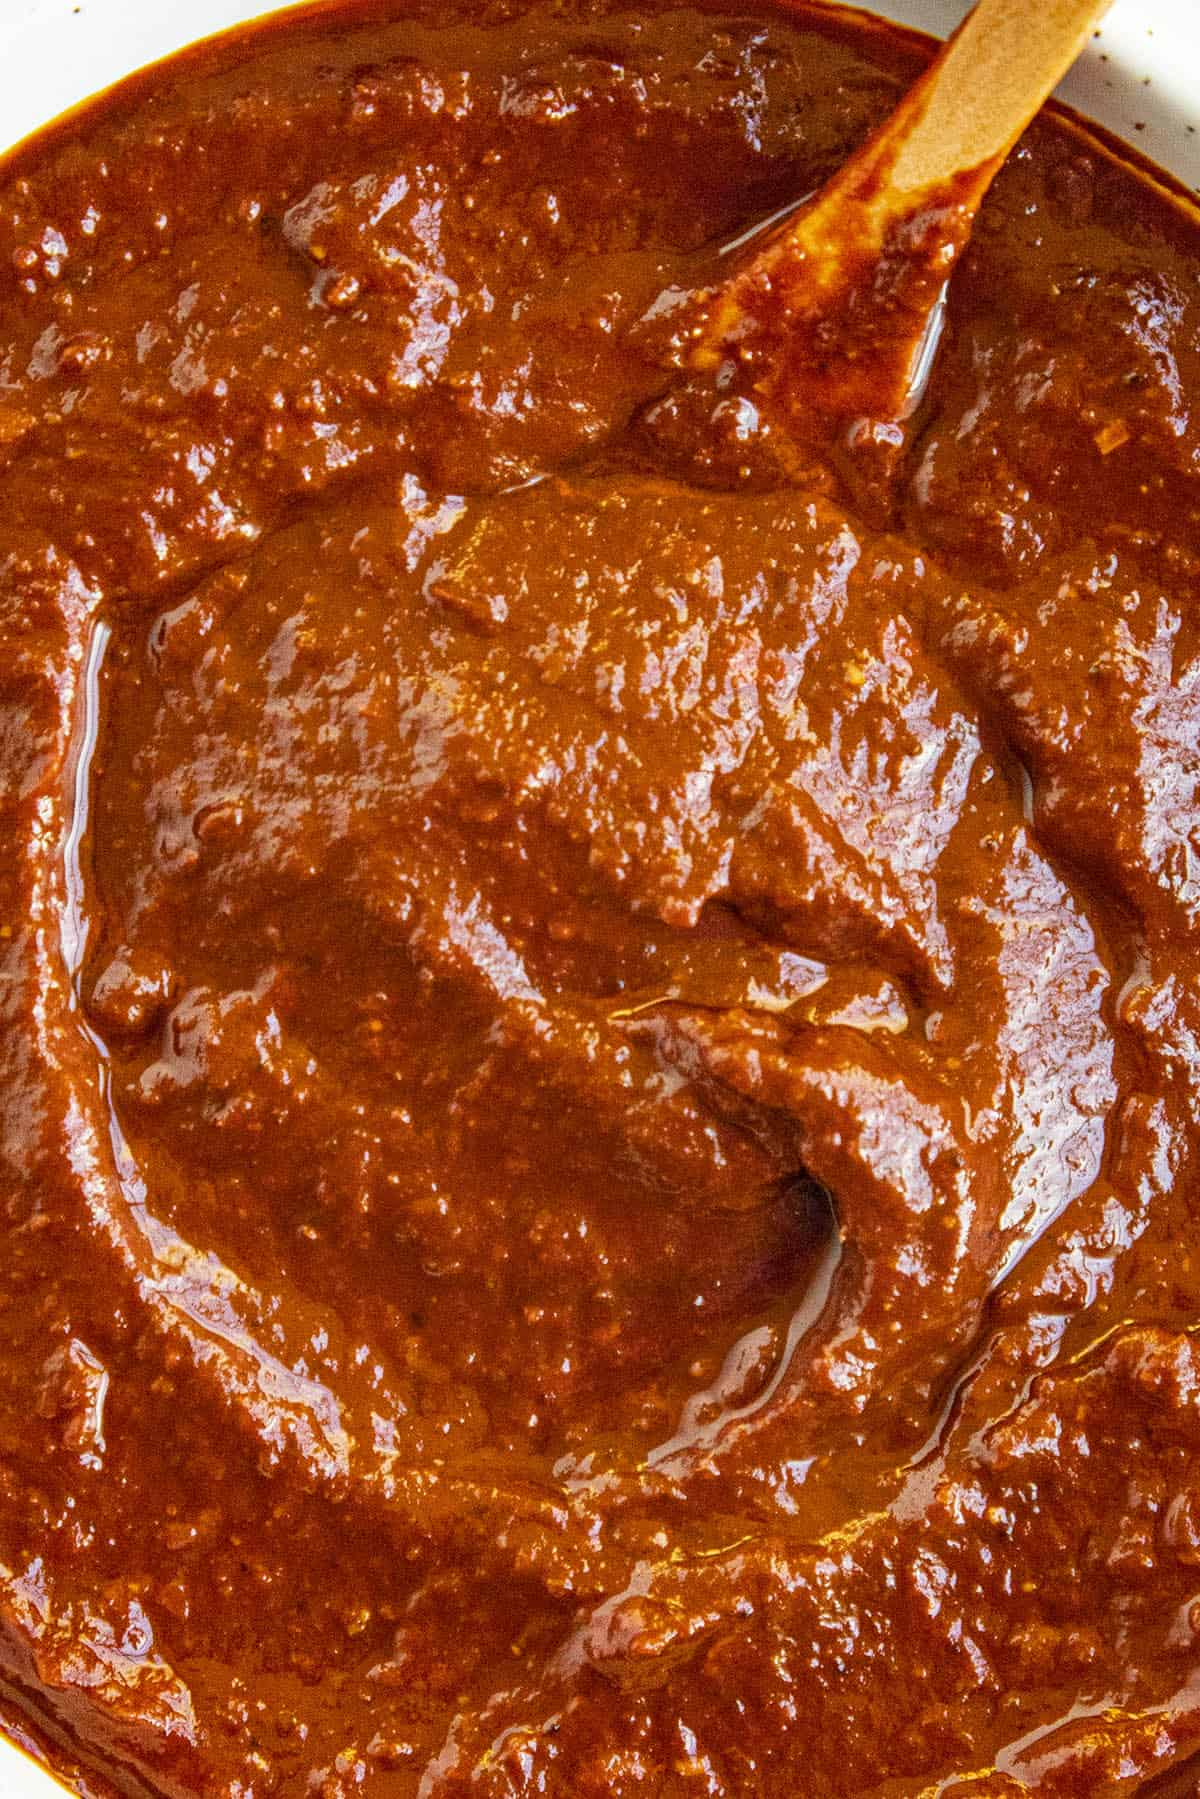 Showing the texture of the Mexican adobo sauce